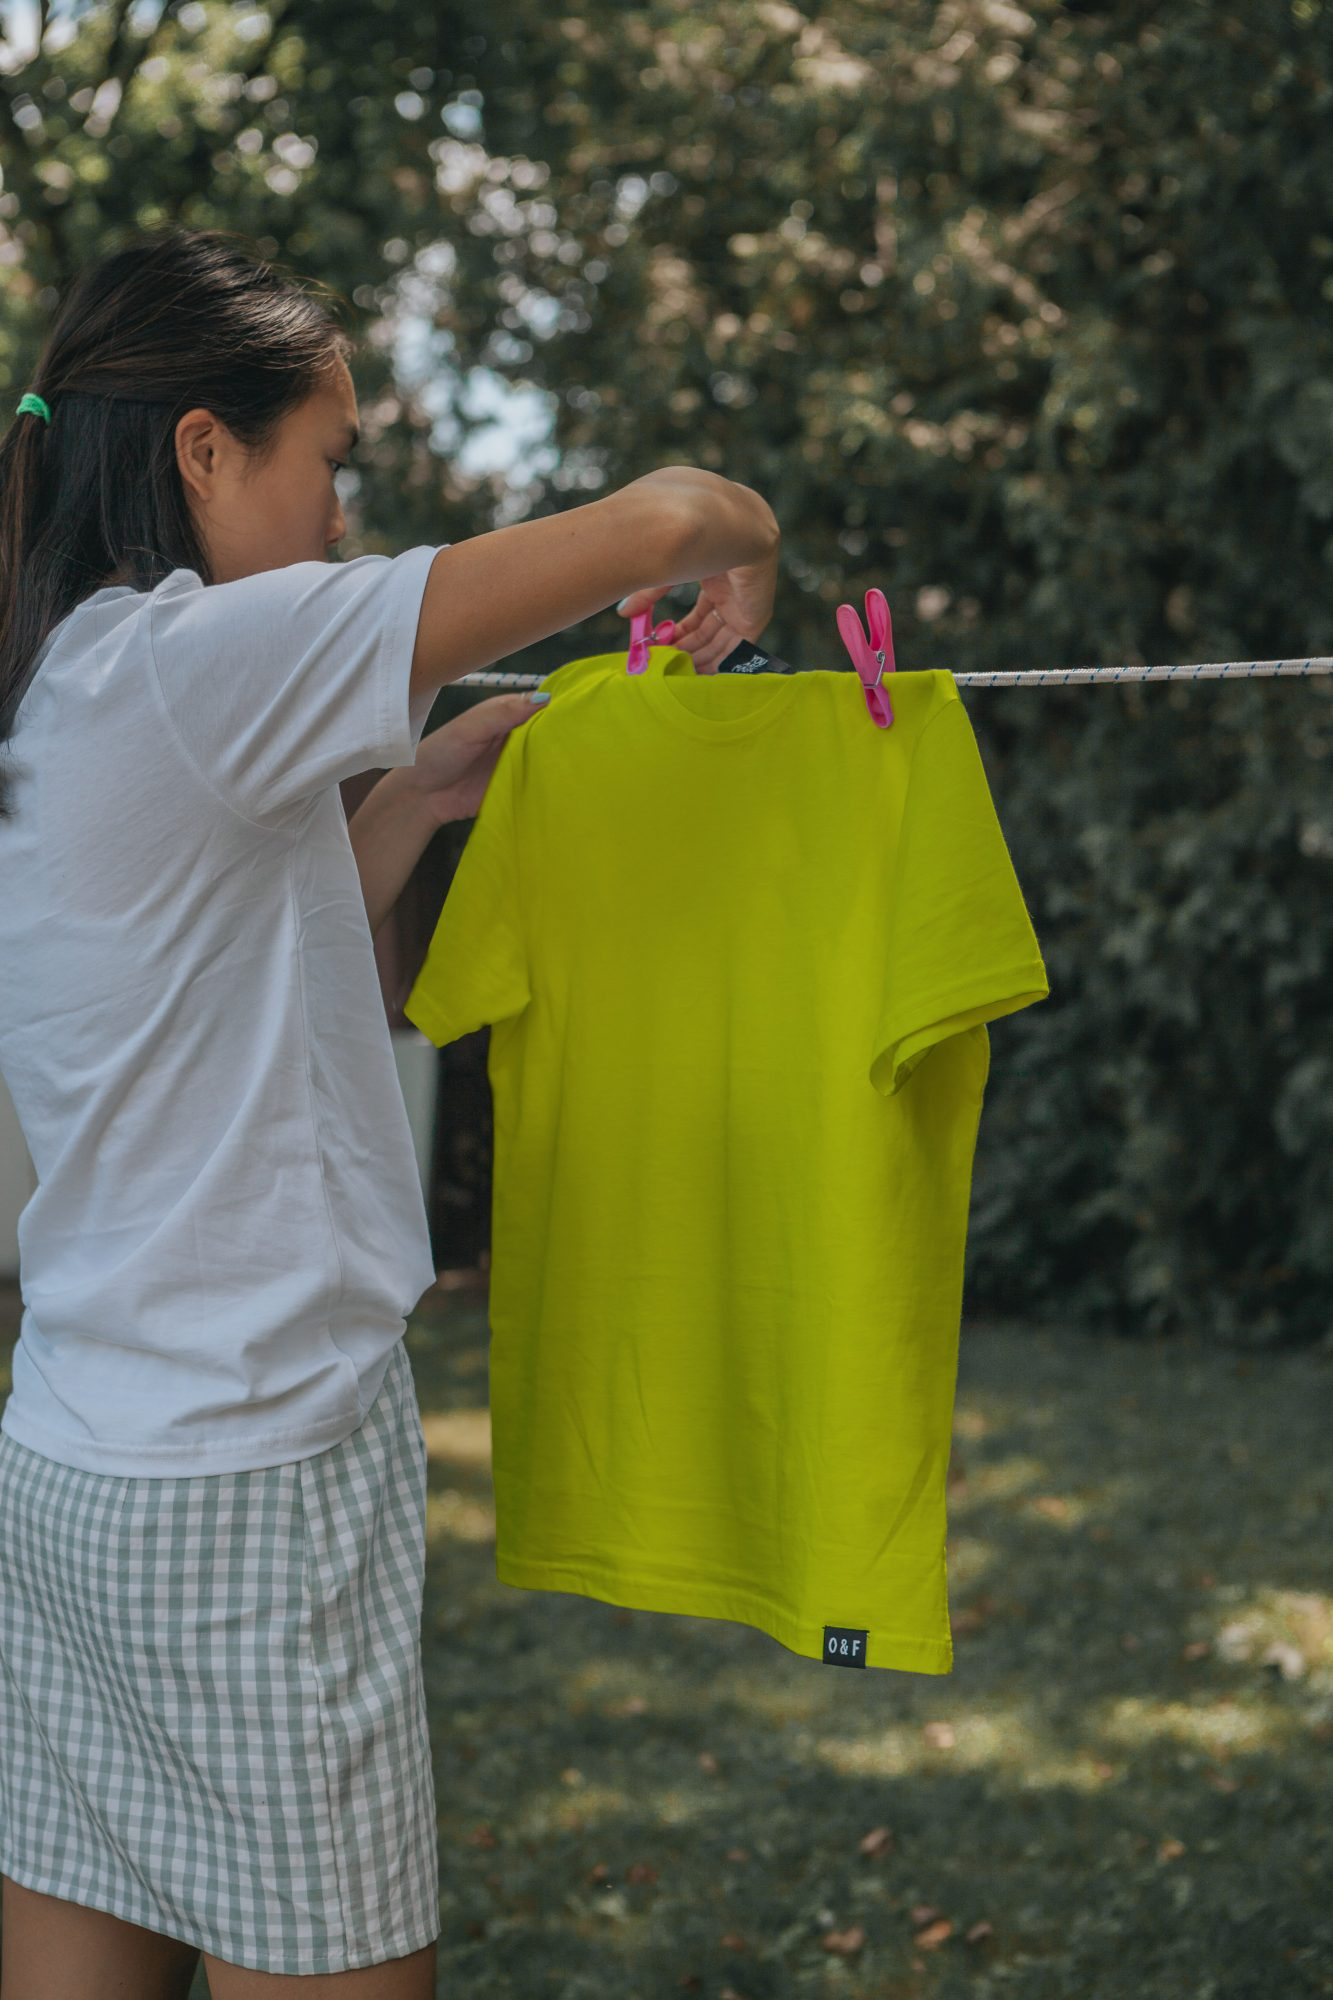 T-shirt Dries on a Rope Free Mockup Colour